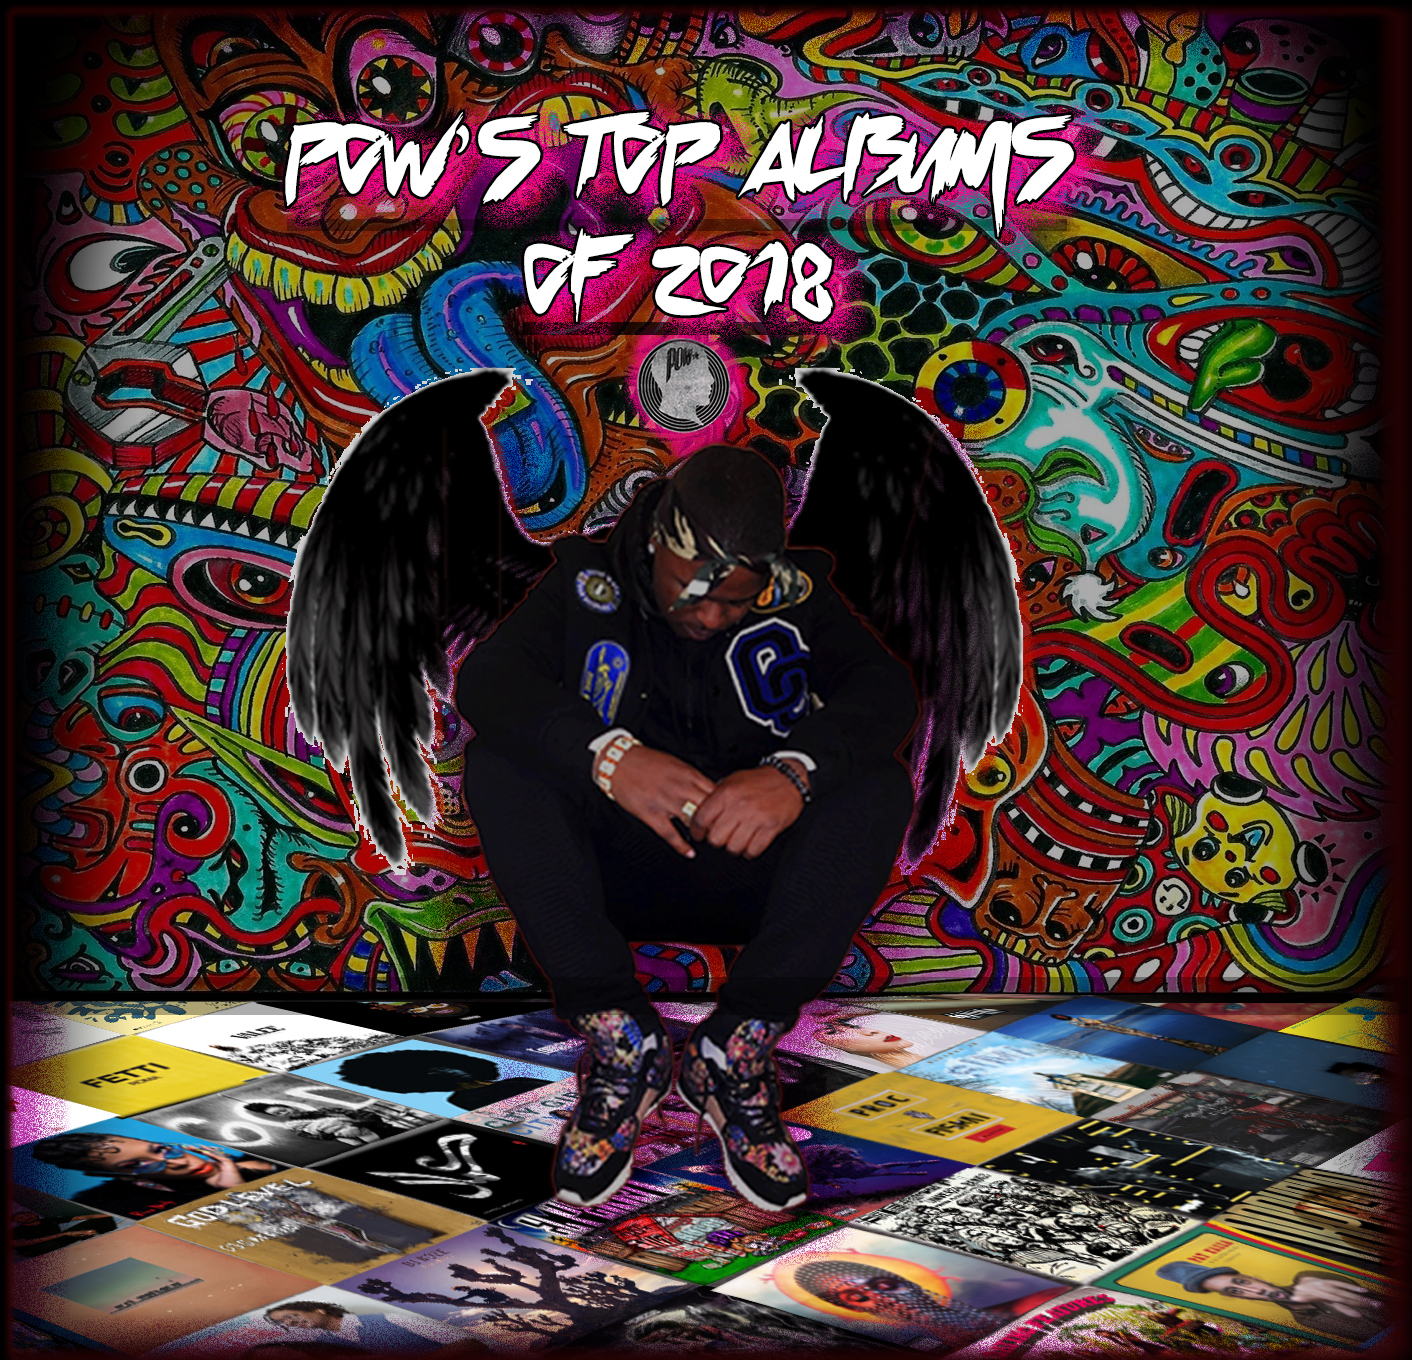 11e1a6685e8 The POW Best Albums of 2018 | Passion of the Weiss